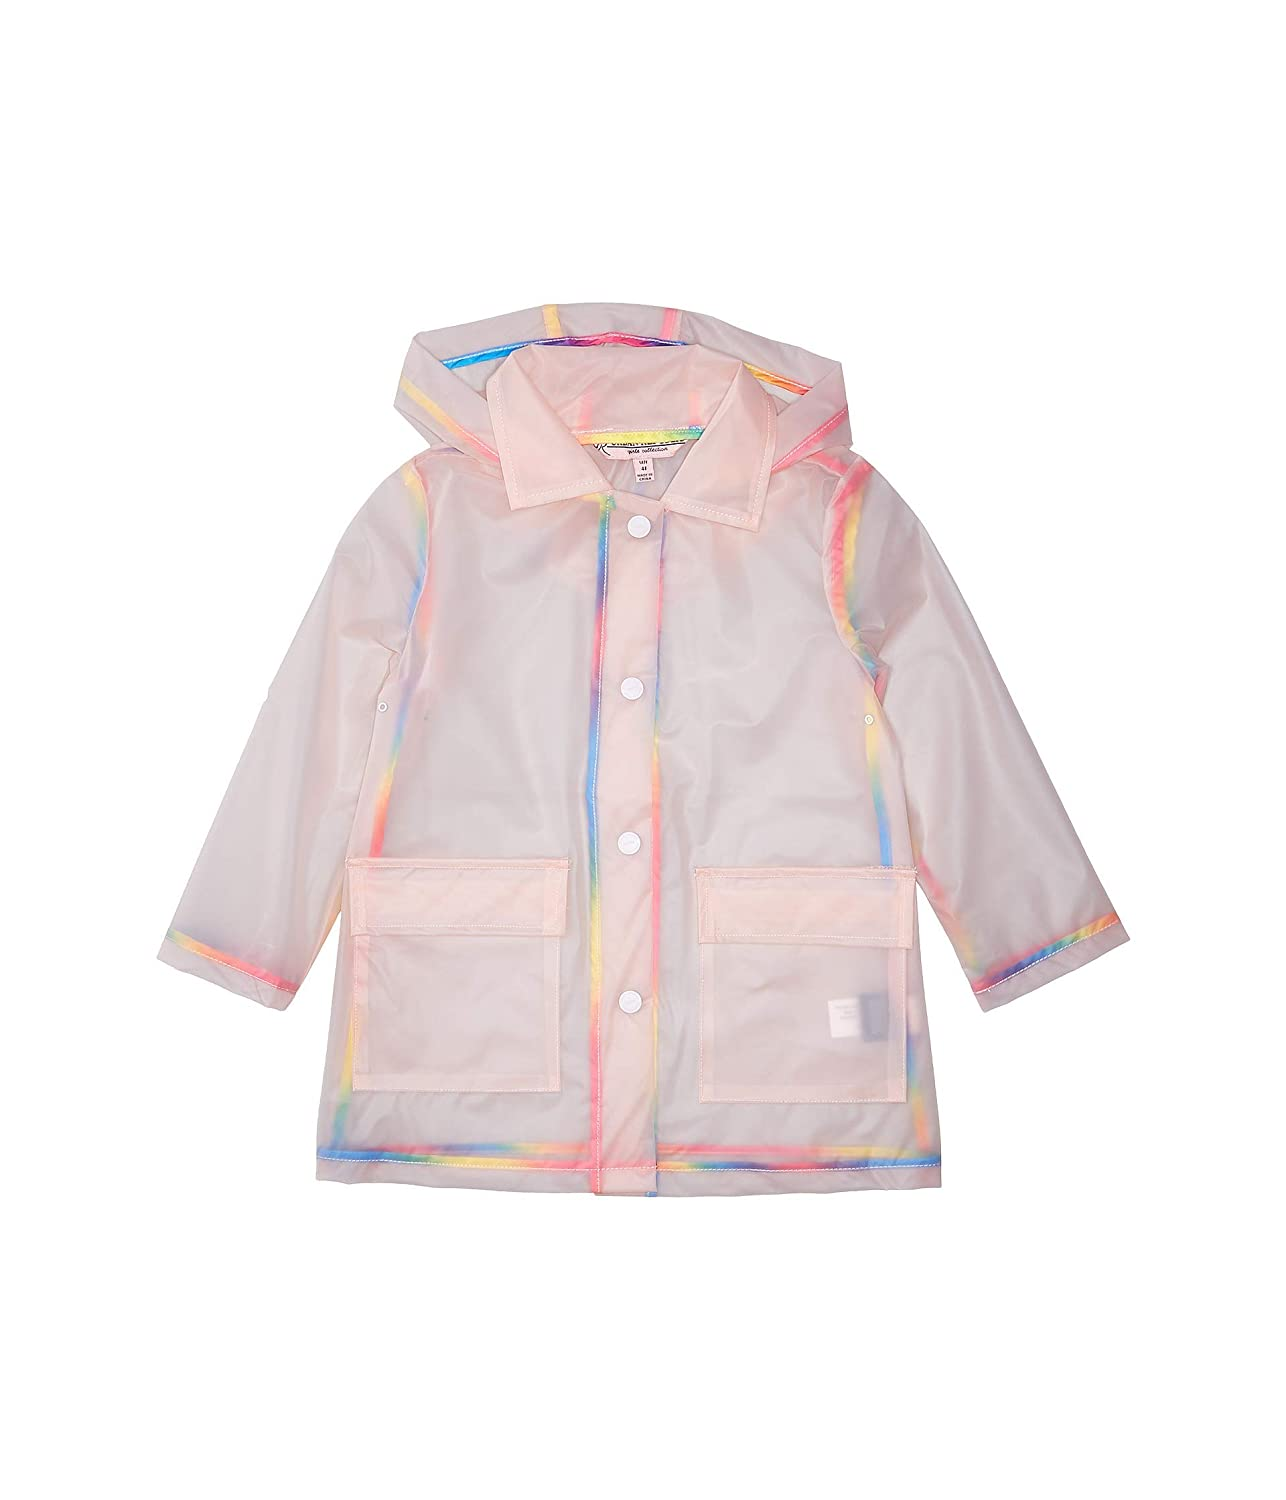 Infant//Toddler Urban Republic Kids Baby Girls Transparent Raincoat with Rainbow Piping